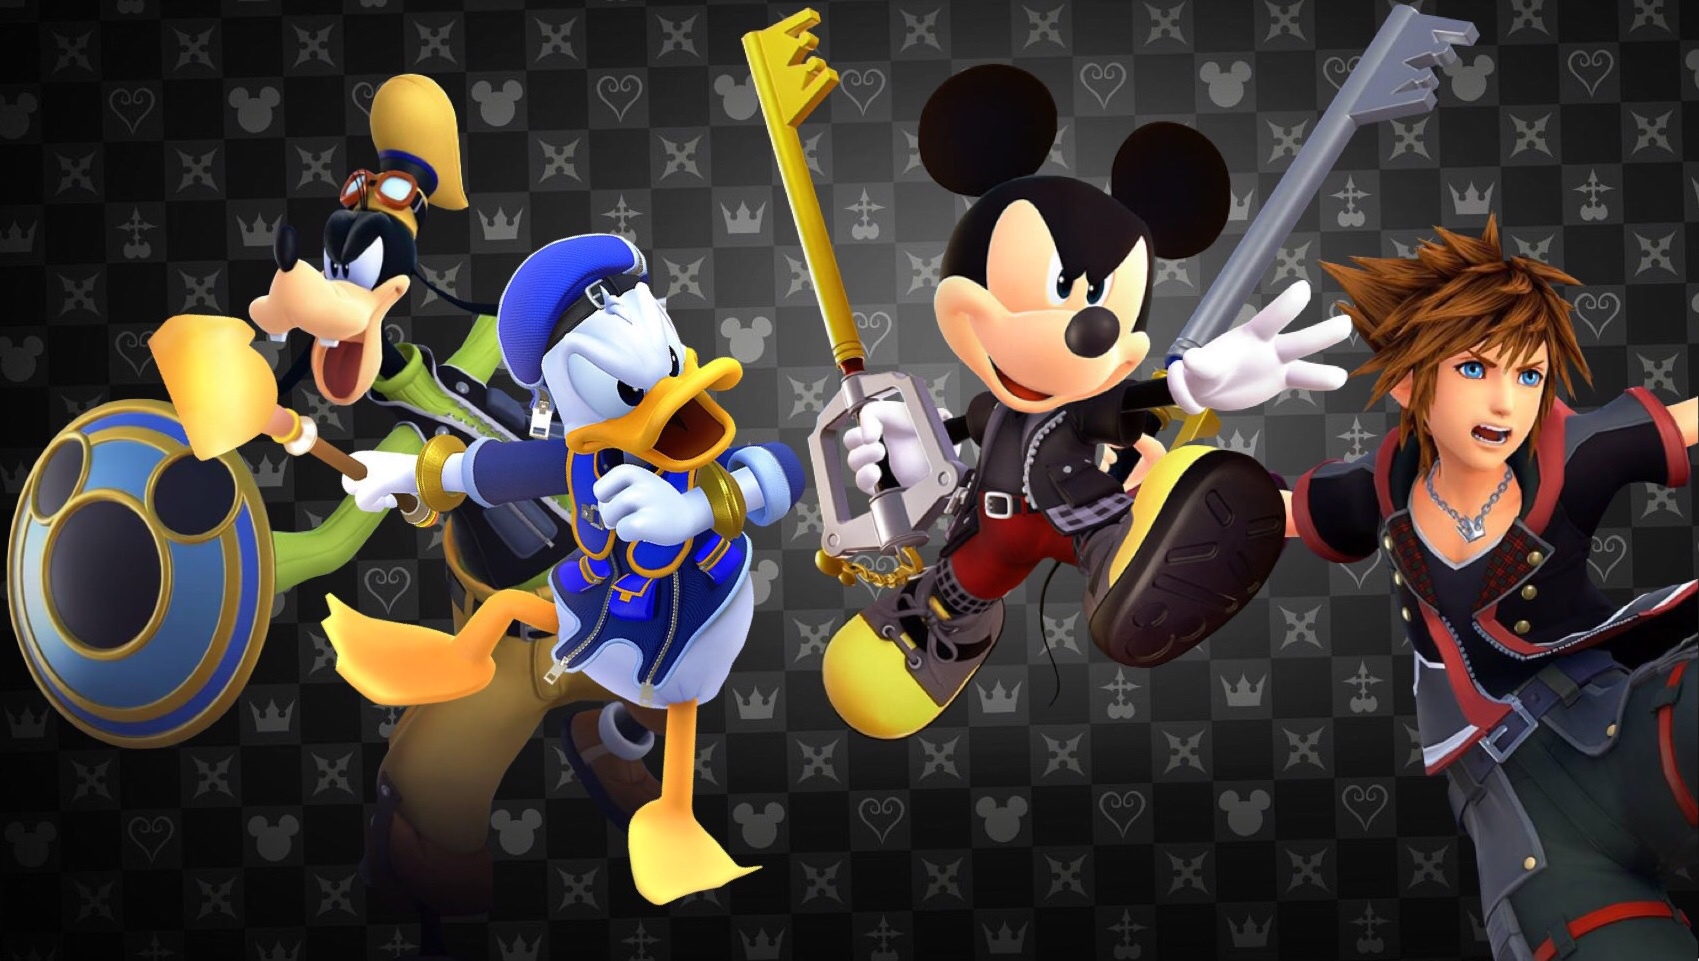 Kingdom Hearts Iii Wallpapers Posted By Sarah Anderson